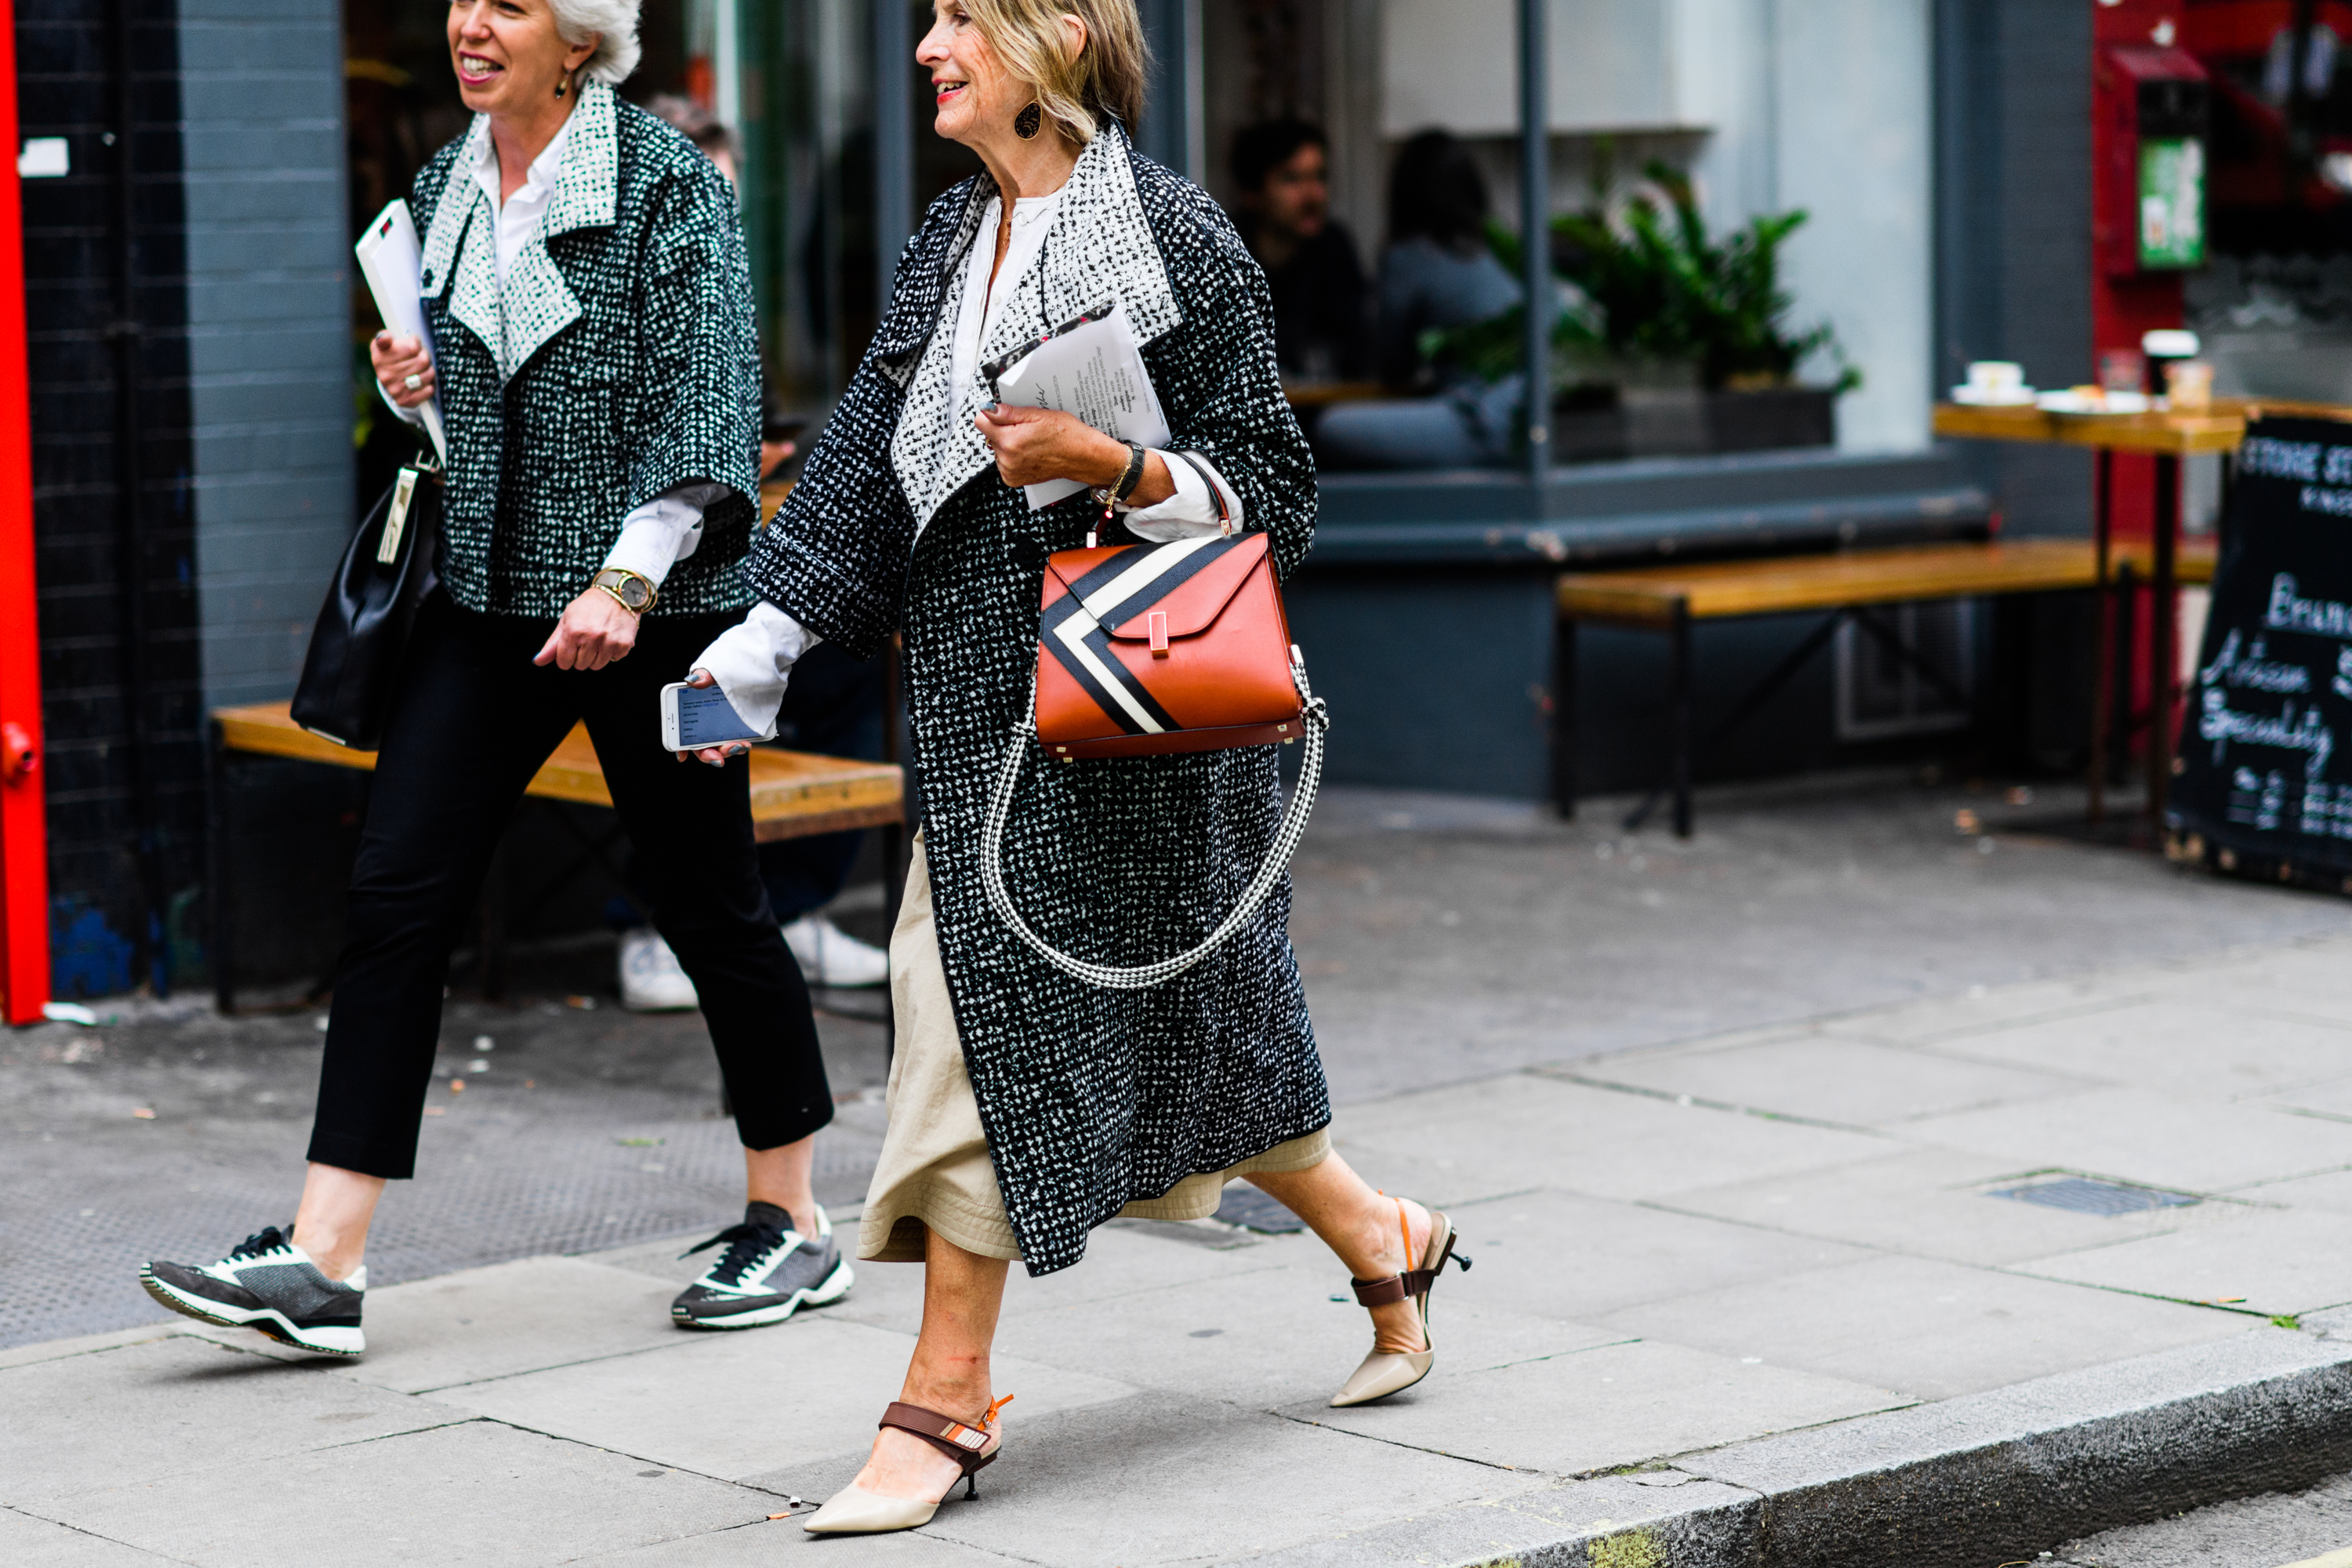 london-lfw-street-style-ss18-day-1-tyler-joe-024-1505753319